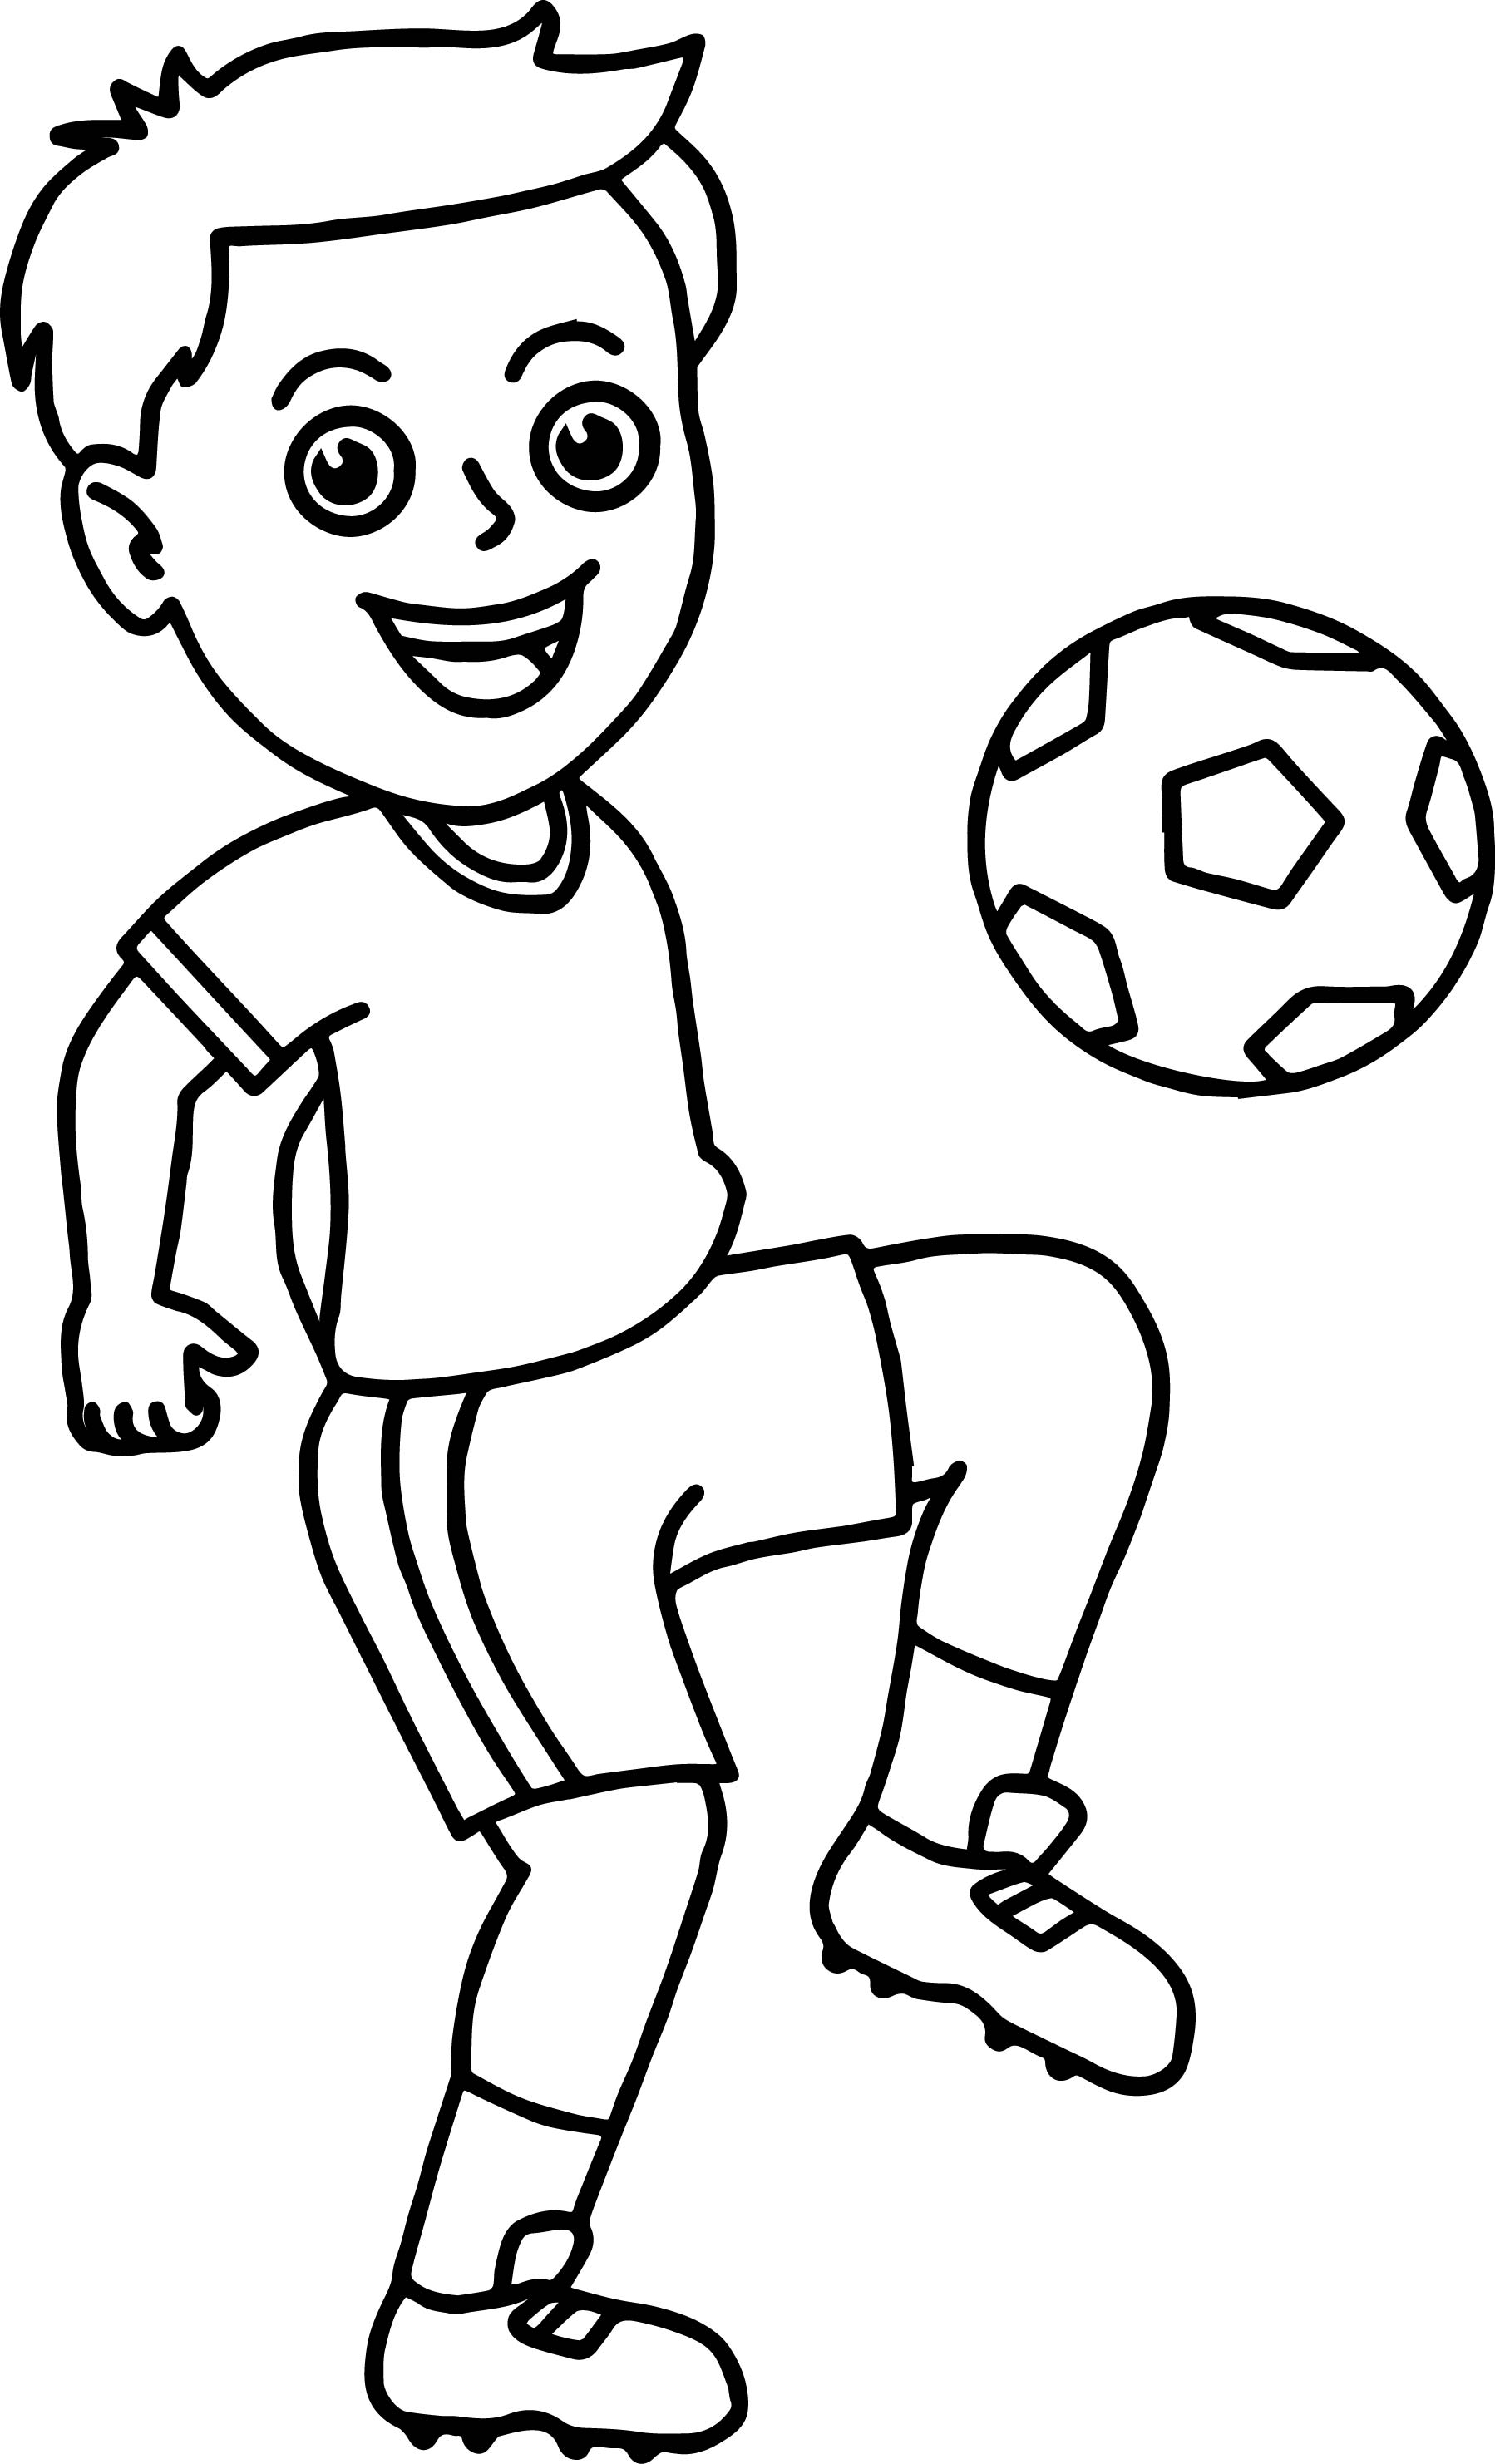 Soccer Player Boy Coloring Page